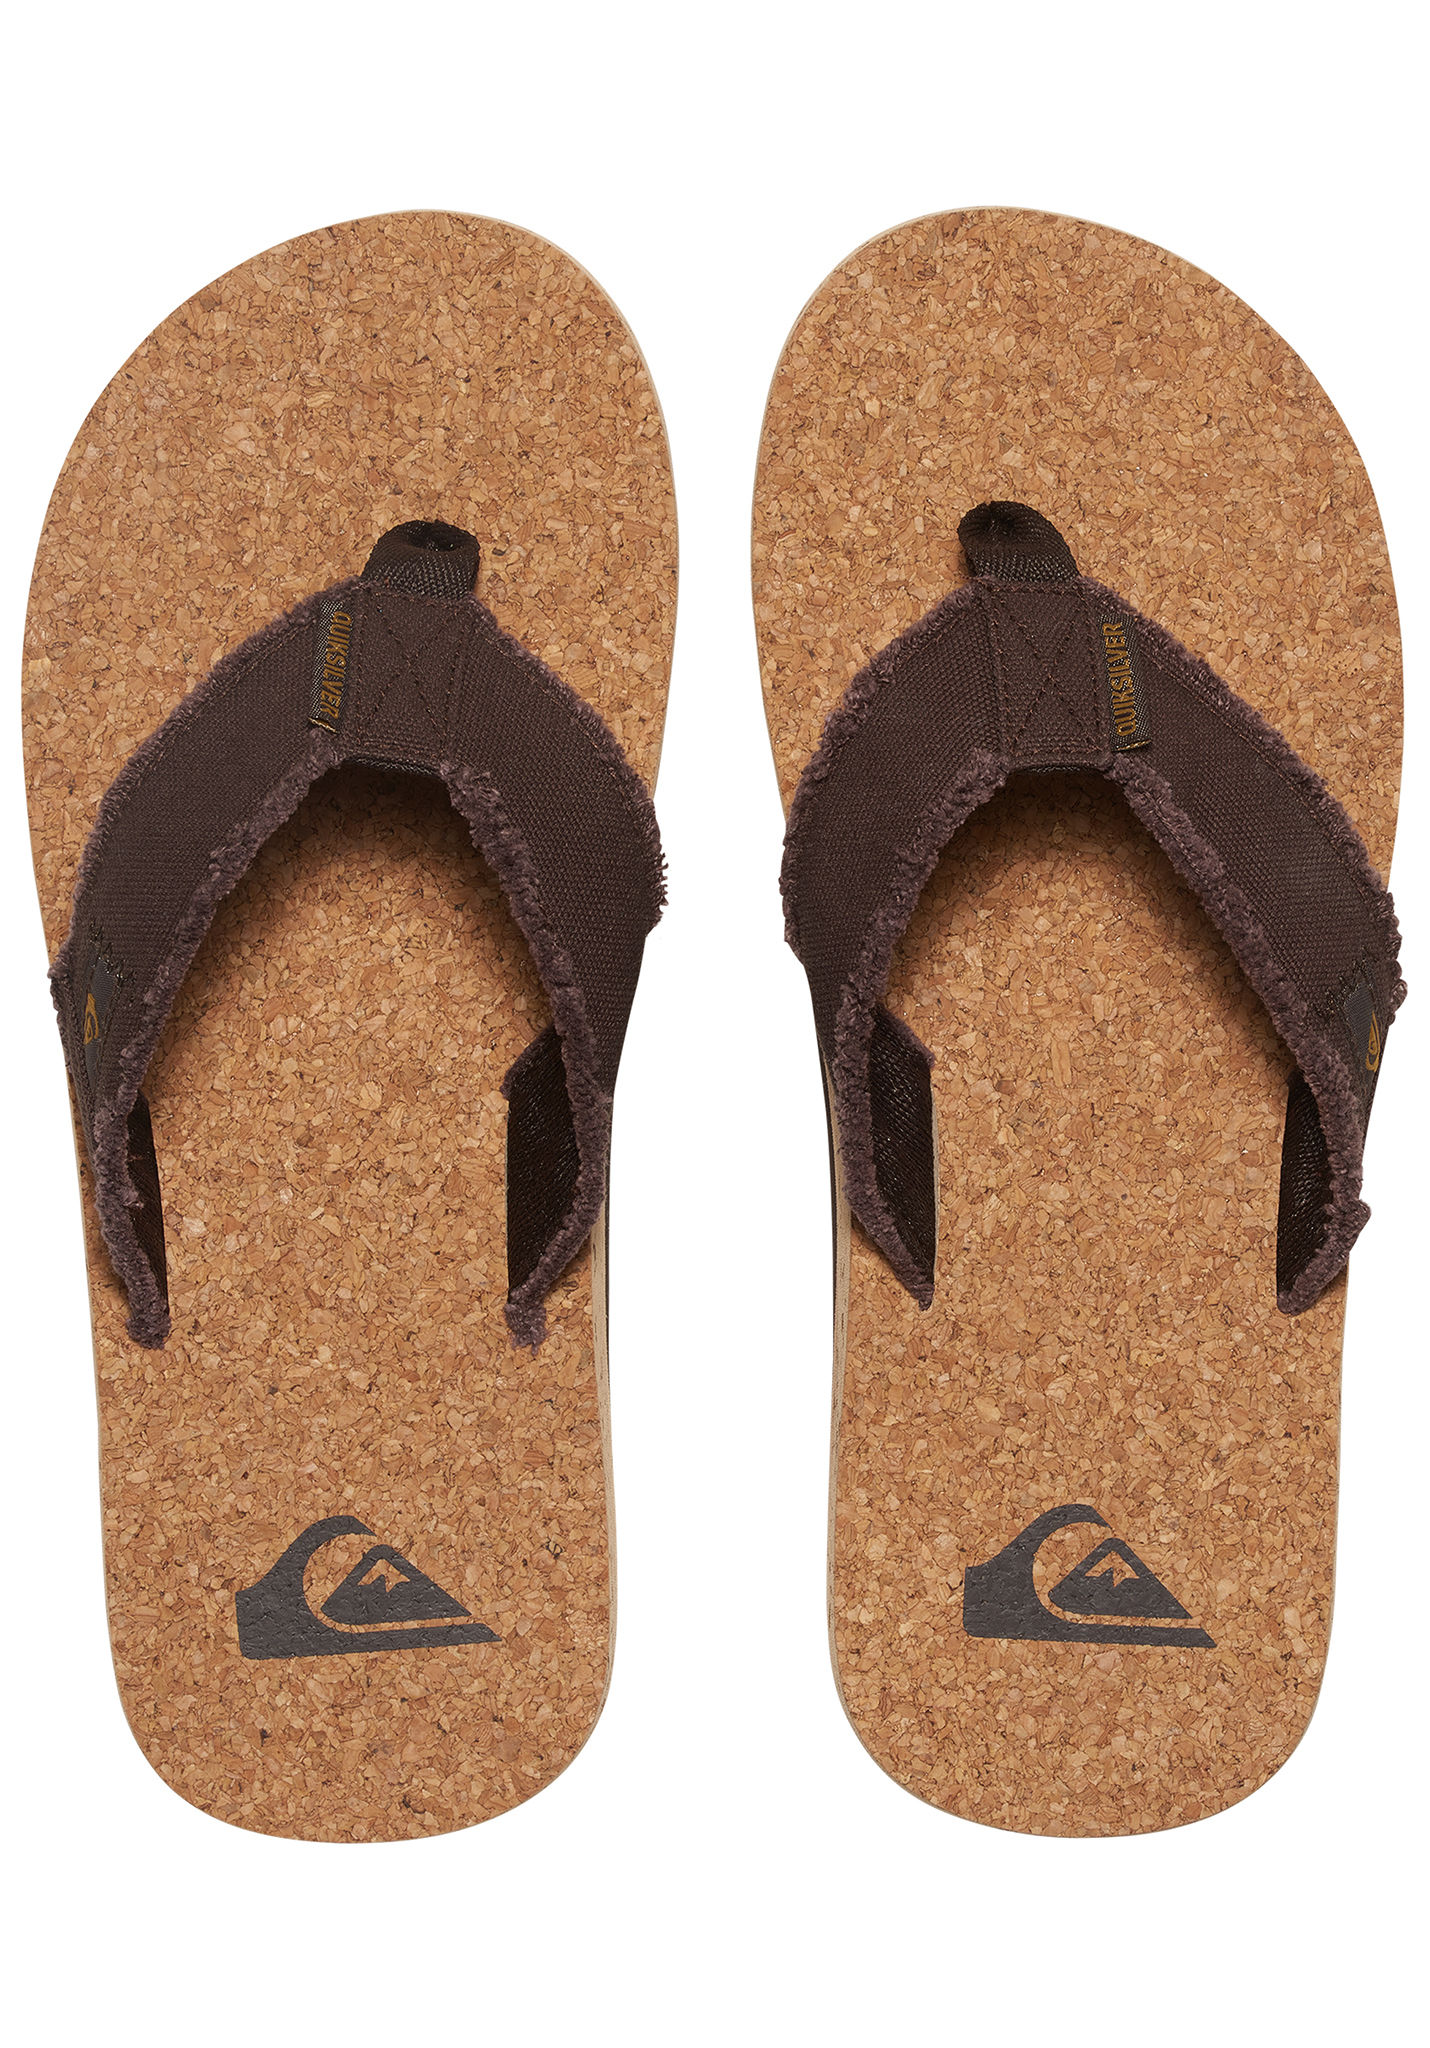 158996c7c623 Quiksilver Monkey Abyss Cork - Sandals for Men - Brown - Planet Sports